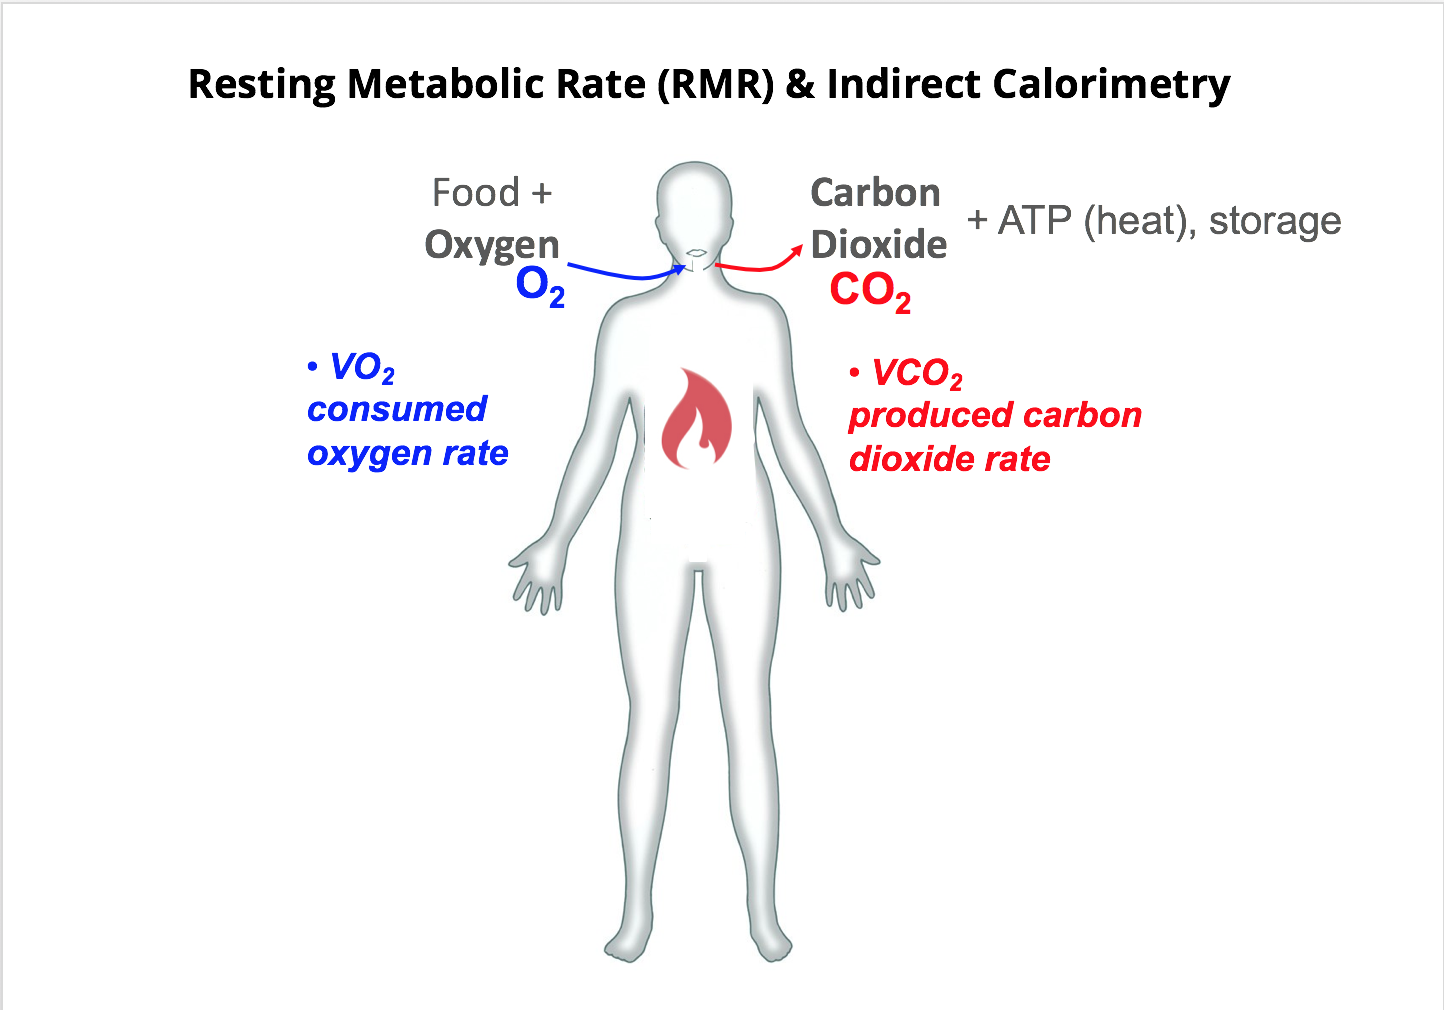 RMR: What Is Resting Metabolic Rate